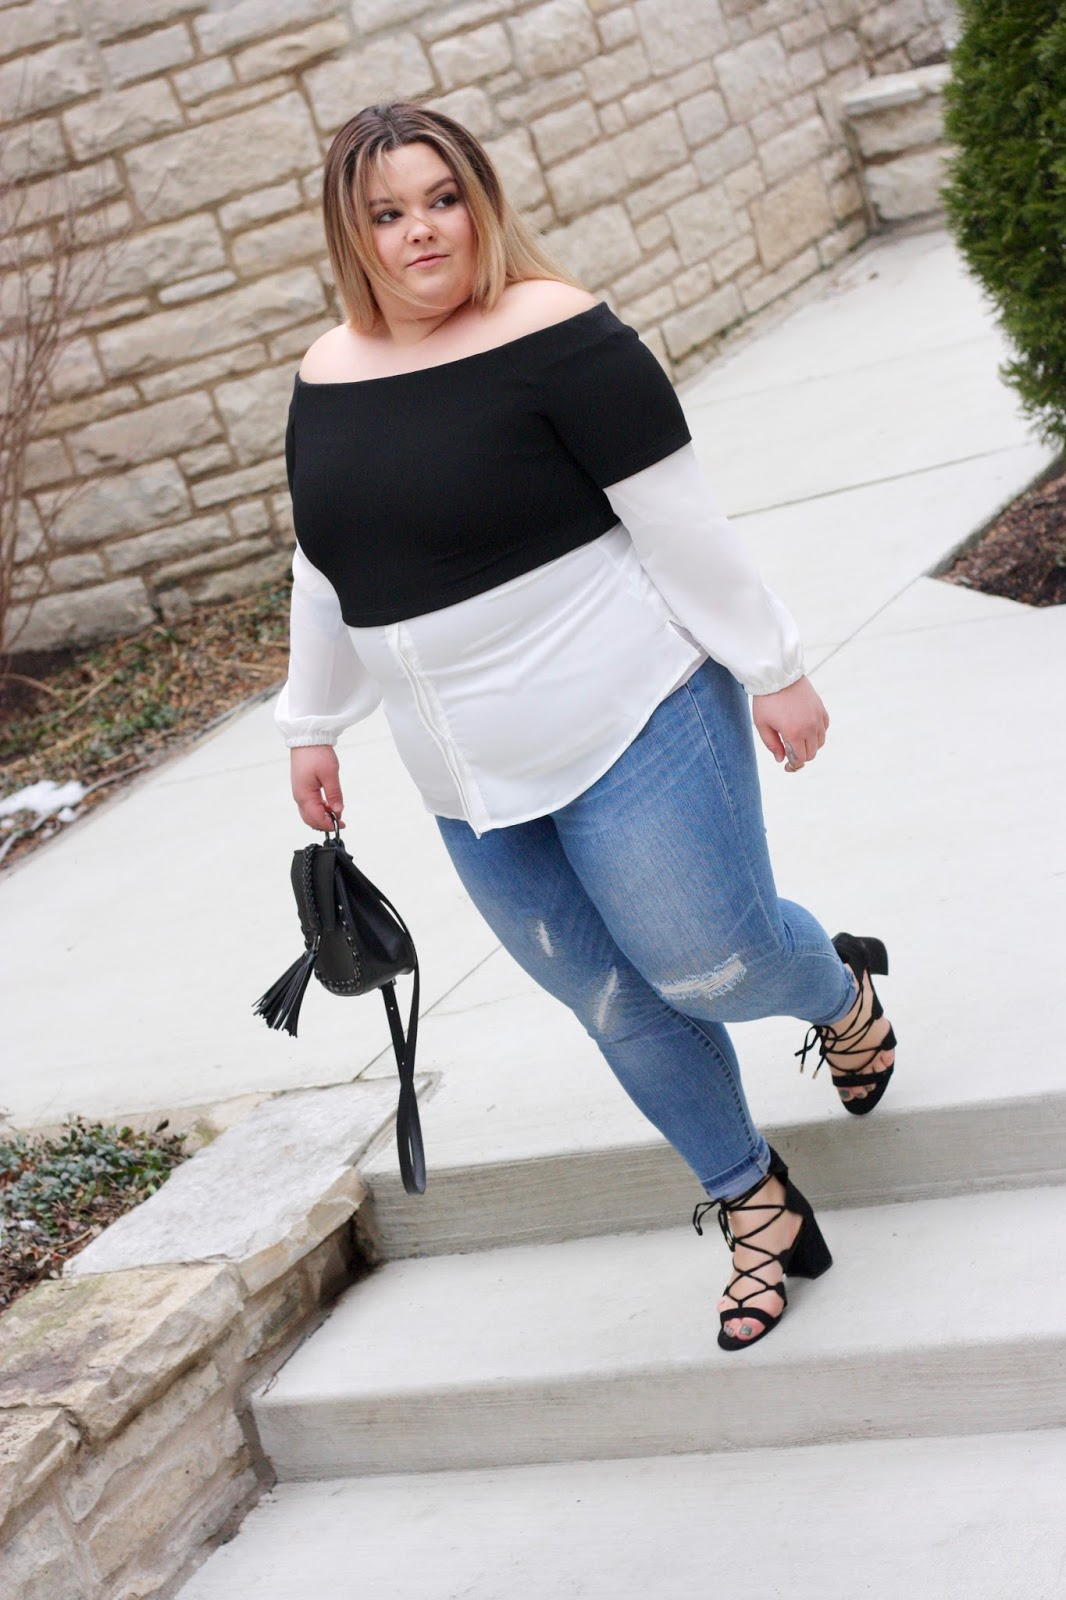 Plus size fashion blog seattle Top 10 Hottest Plus Size Models of 2016 ReelRundown